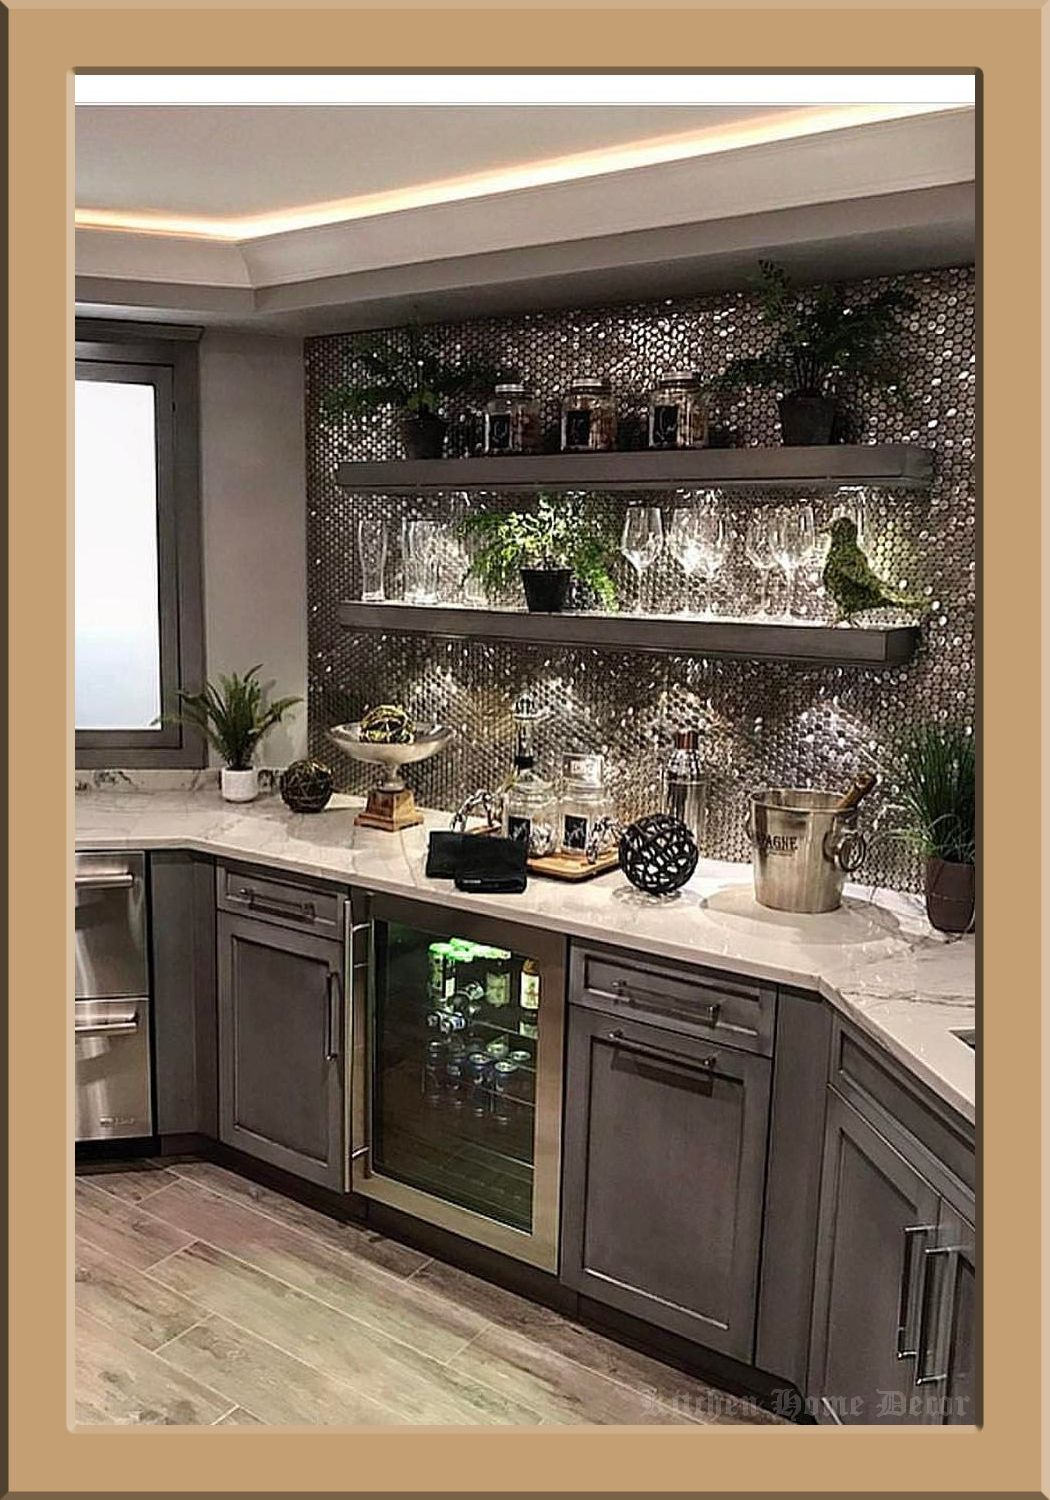 10 Creative Ways You Can Improve Your Kitchen Decor – Home & Woman